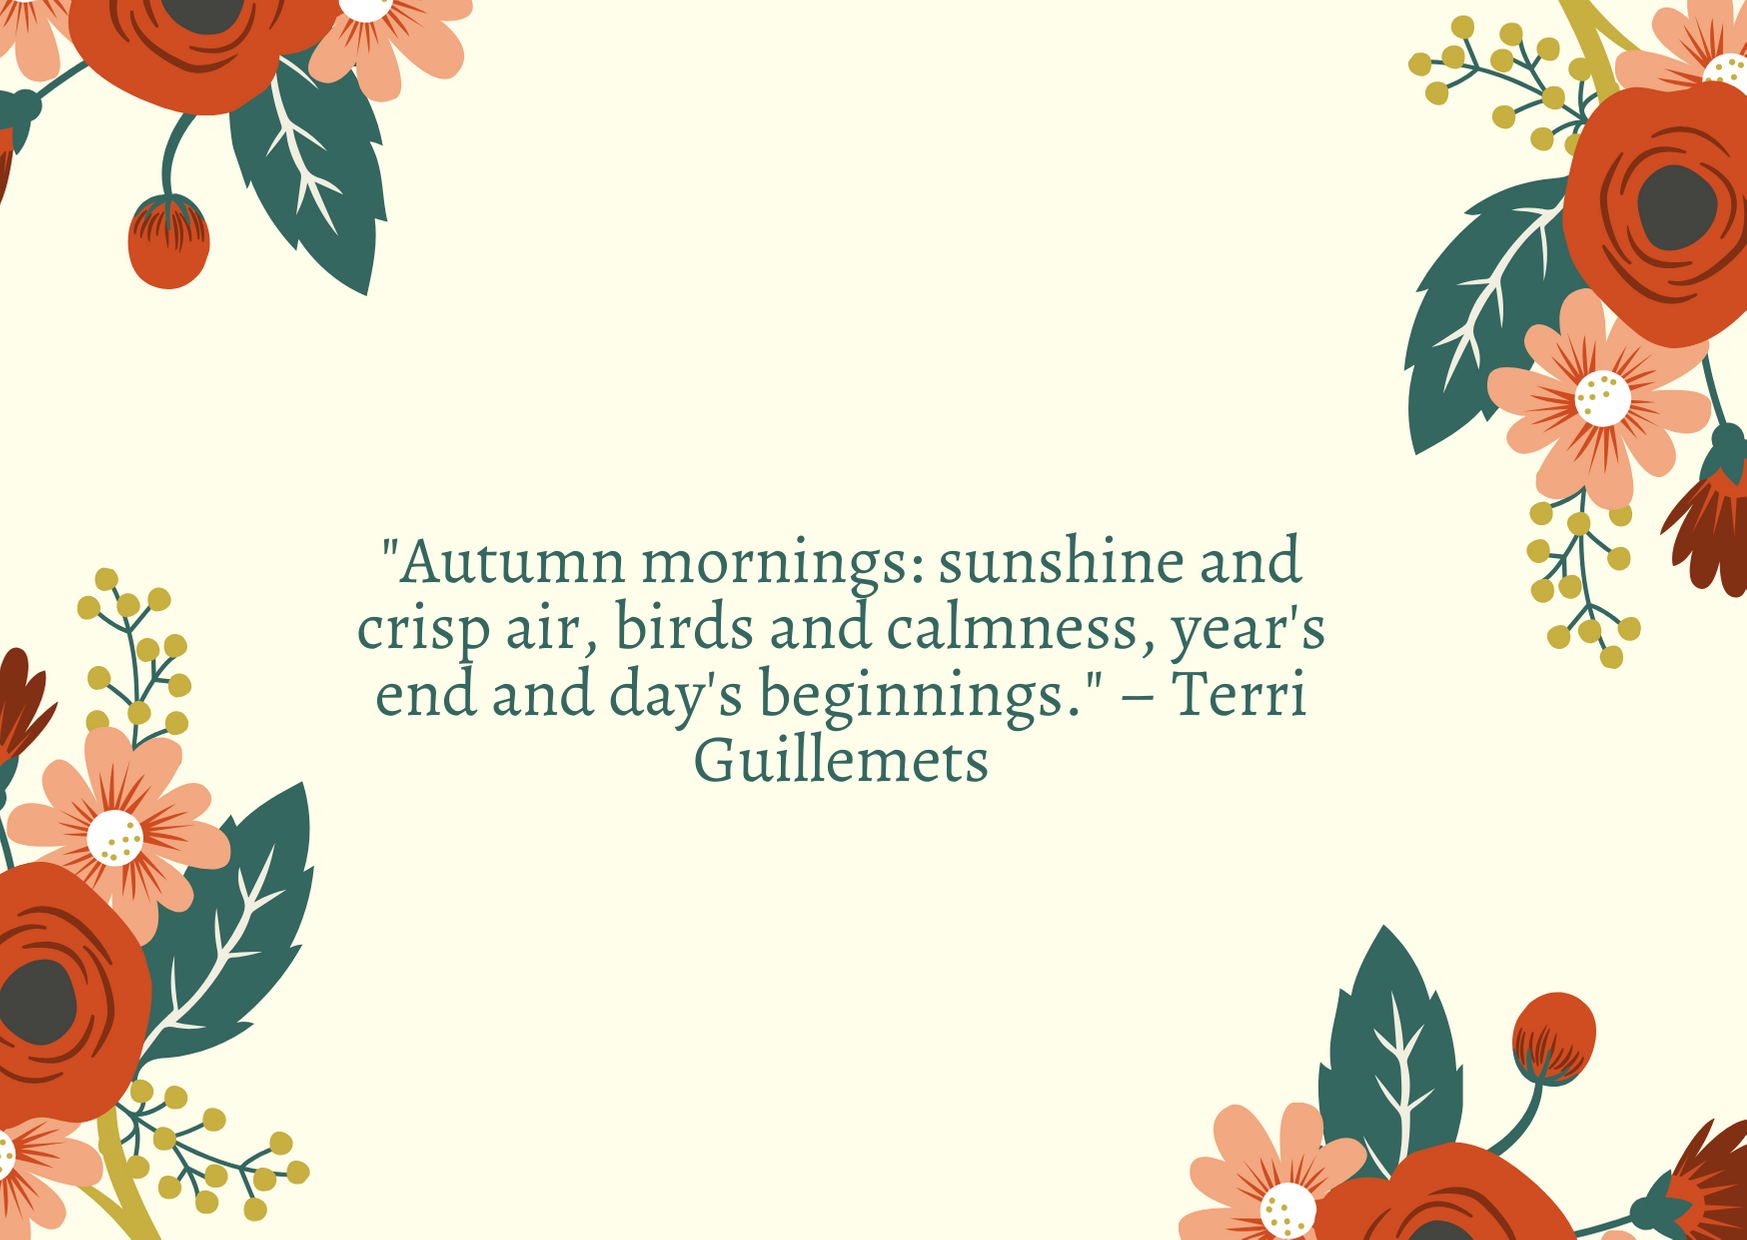 """Autumn mornings: sunshine and crisp air, birds and calmness, year's end and day's beginnings."" – Terri Guillemets"